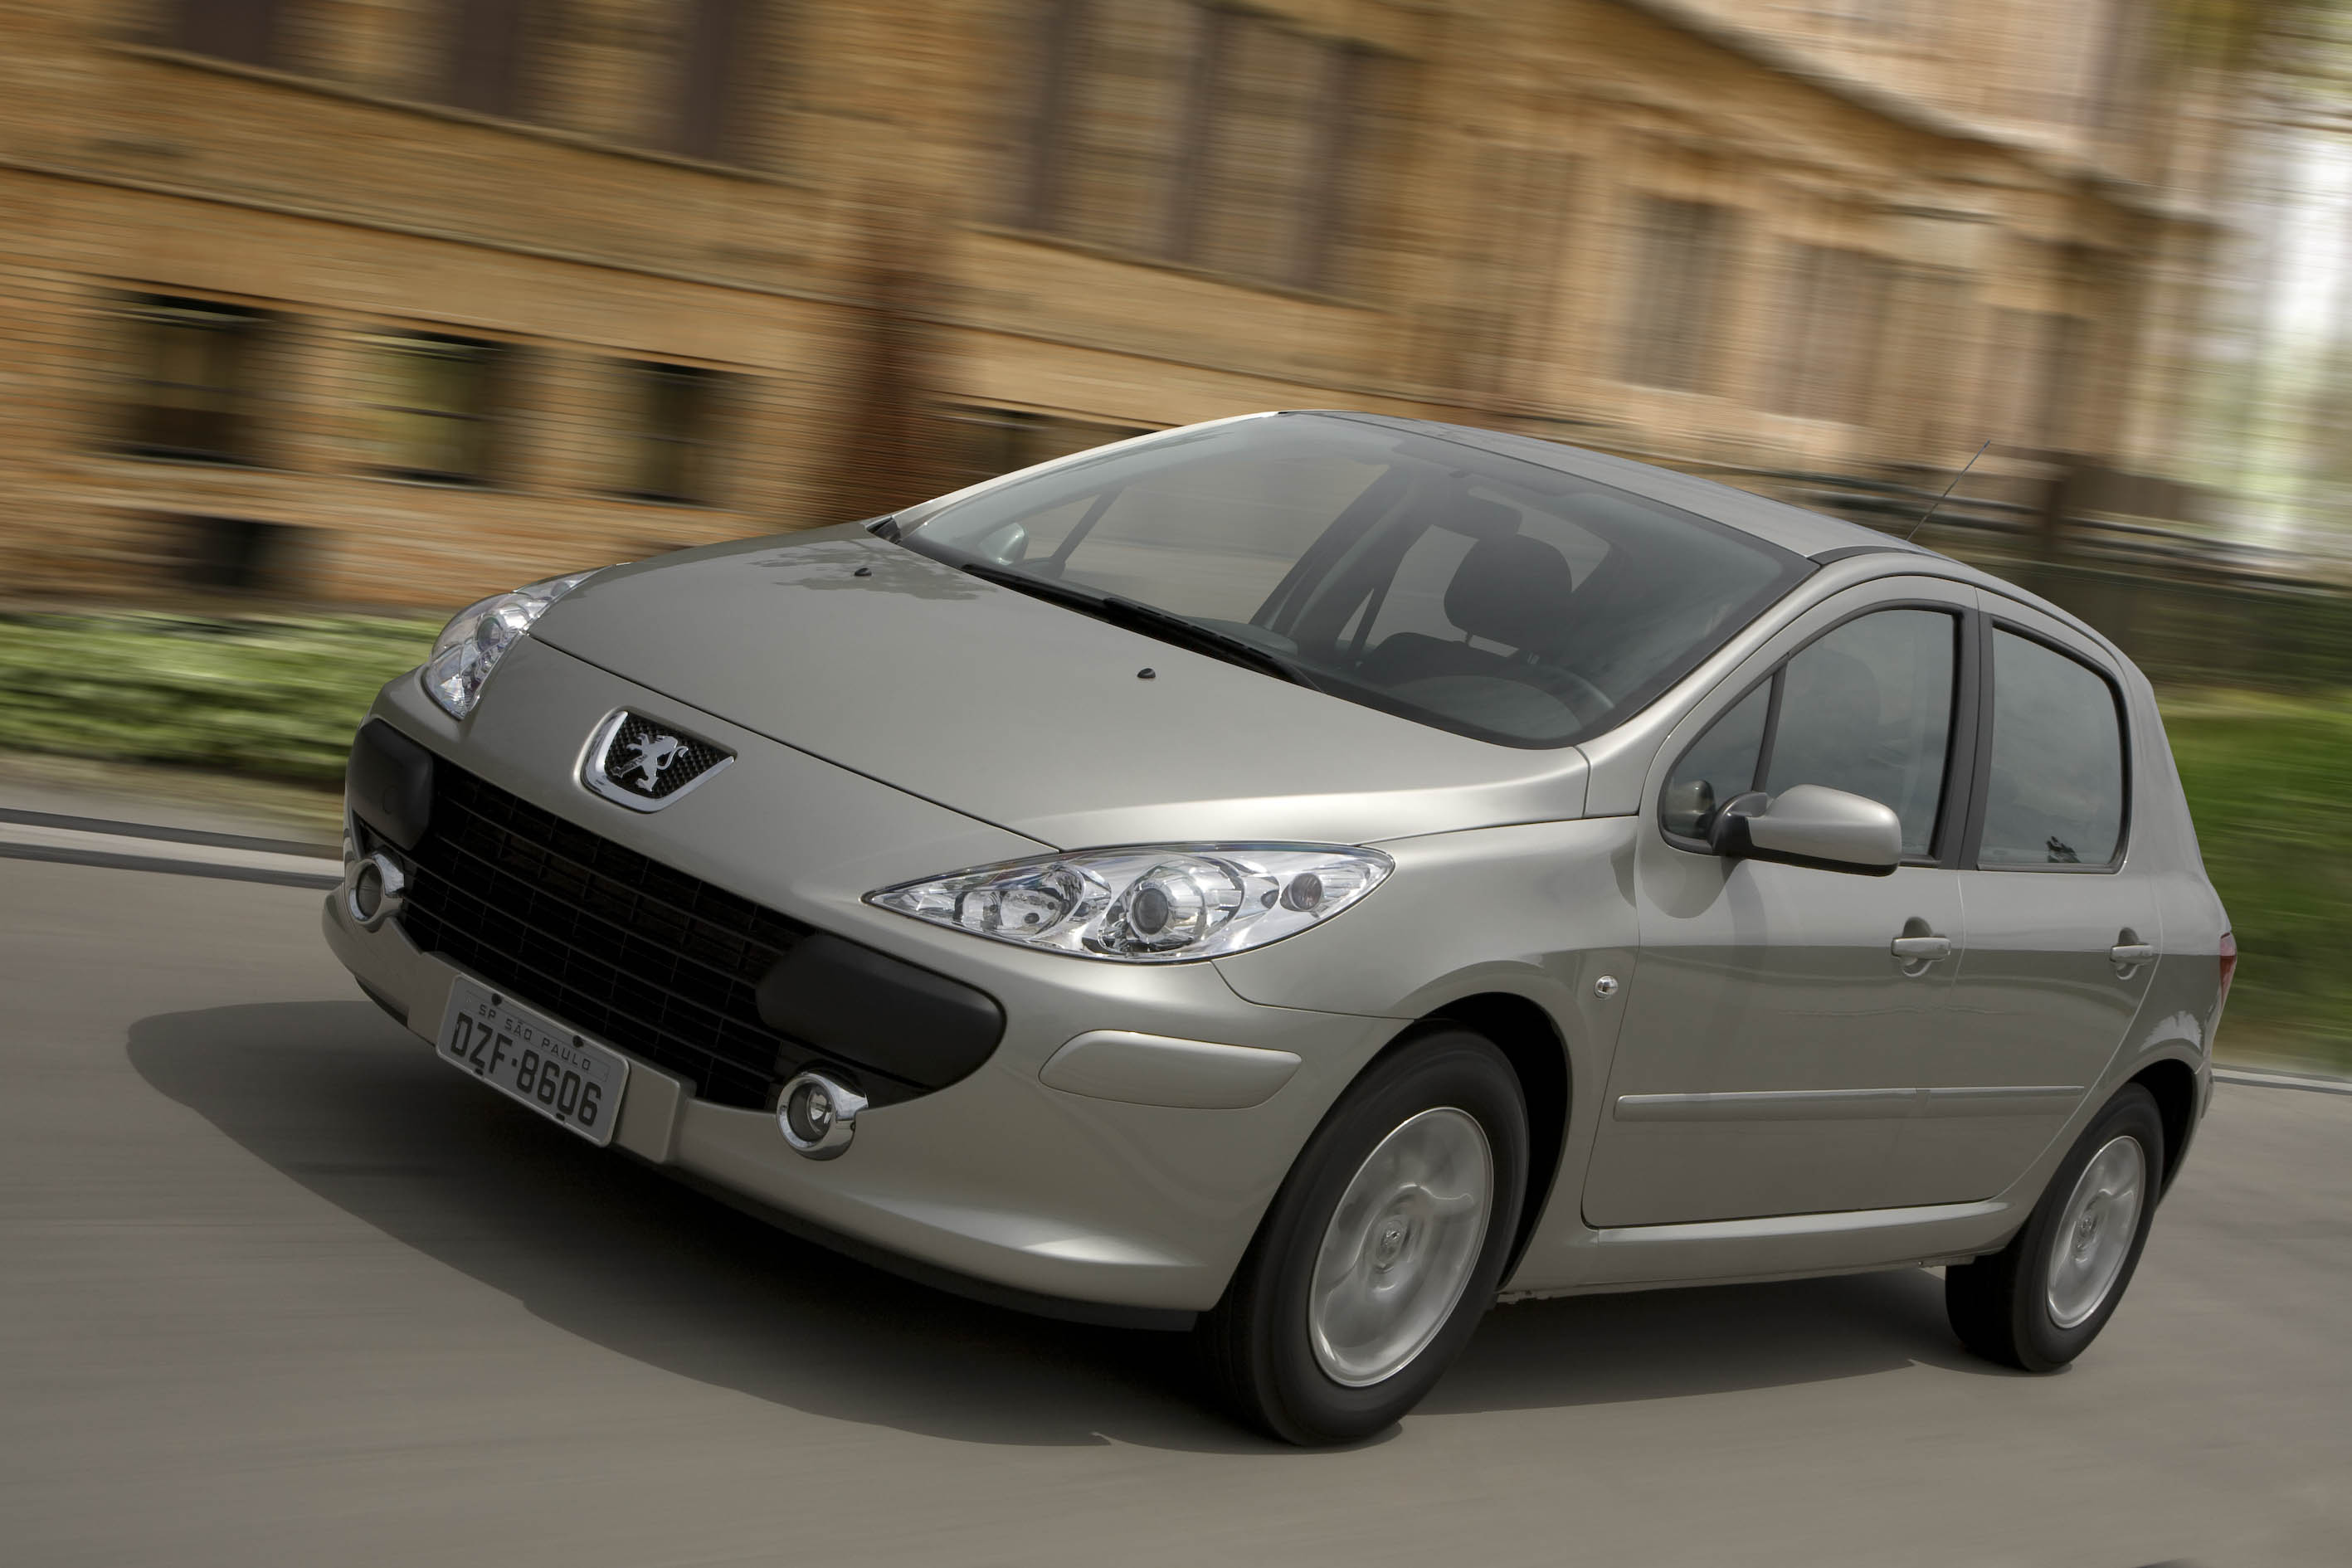 Pictures of peugeot 307 2009 #15